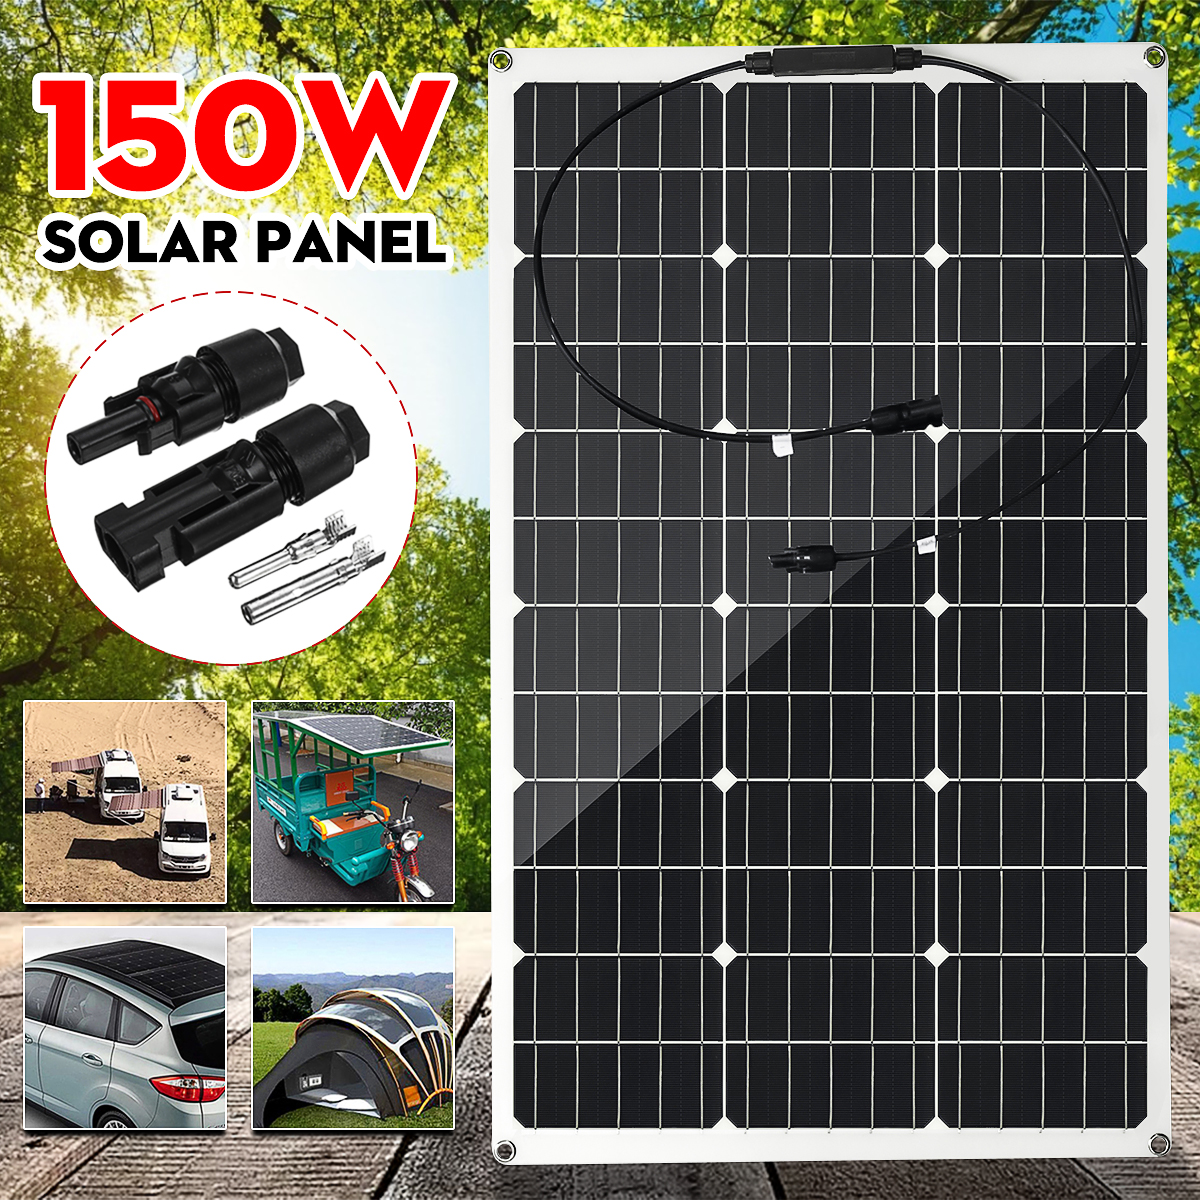 150W Solar Panel 18V Semi-flexible Monocrystalline Solar Cell DIY Module MC4 Cable Outdoor Connector Battery Charger Waterproof